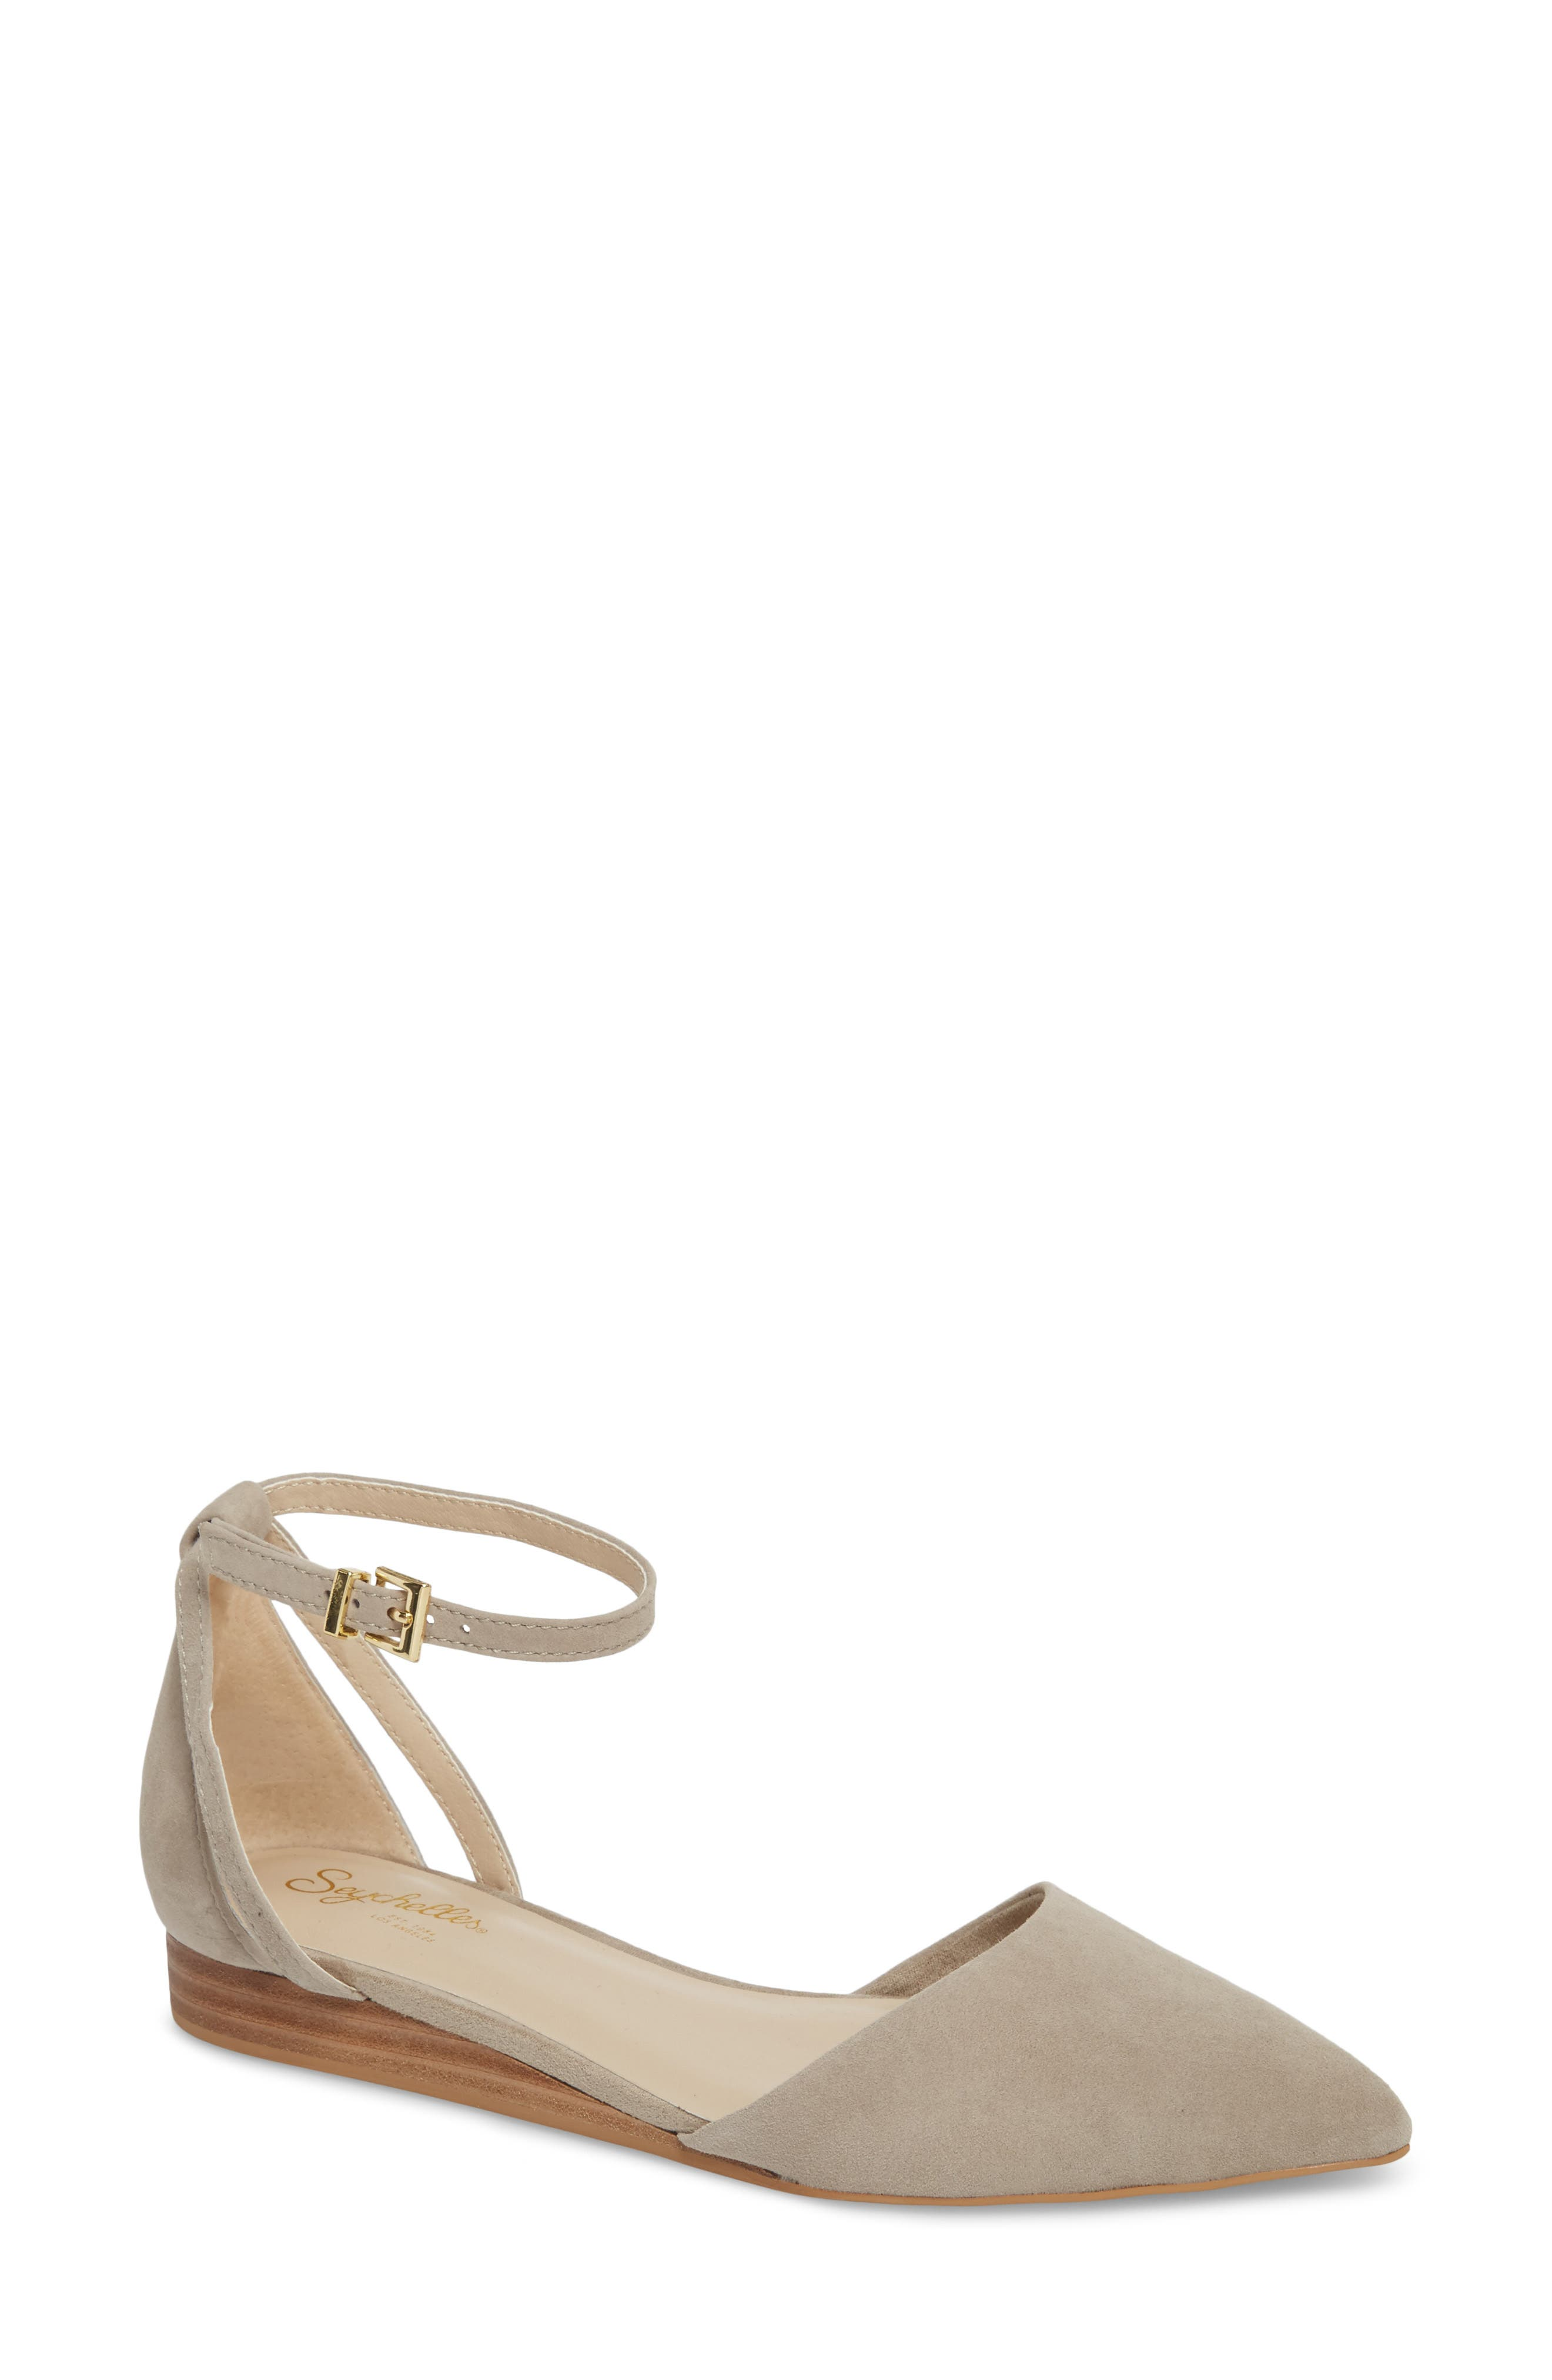 Quiet The Mind Sandal in Gold. - size 7 (also in 10,6.5,7.5,8,8.5,9,9.5) Seychelles